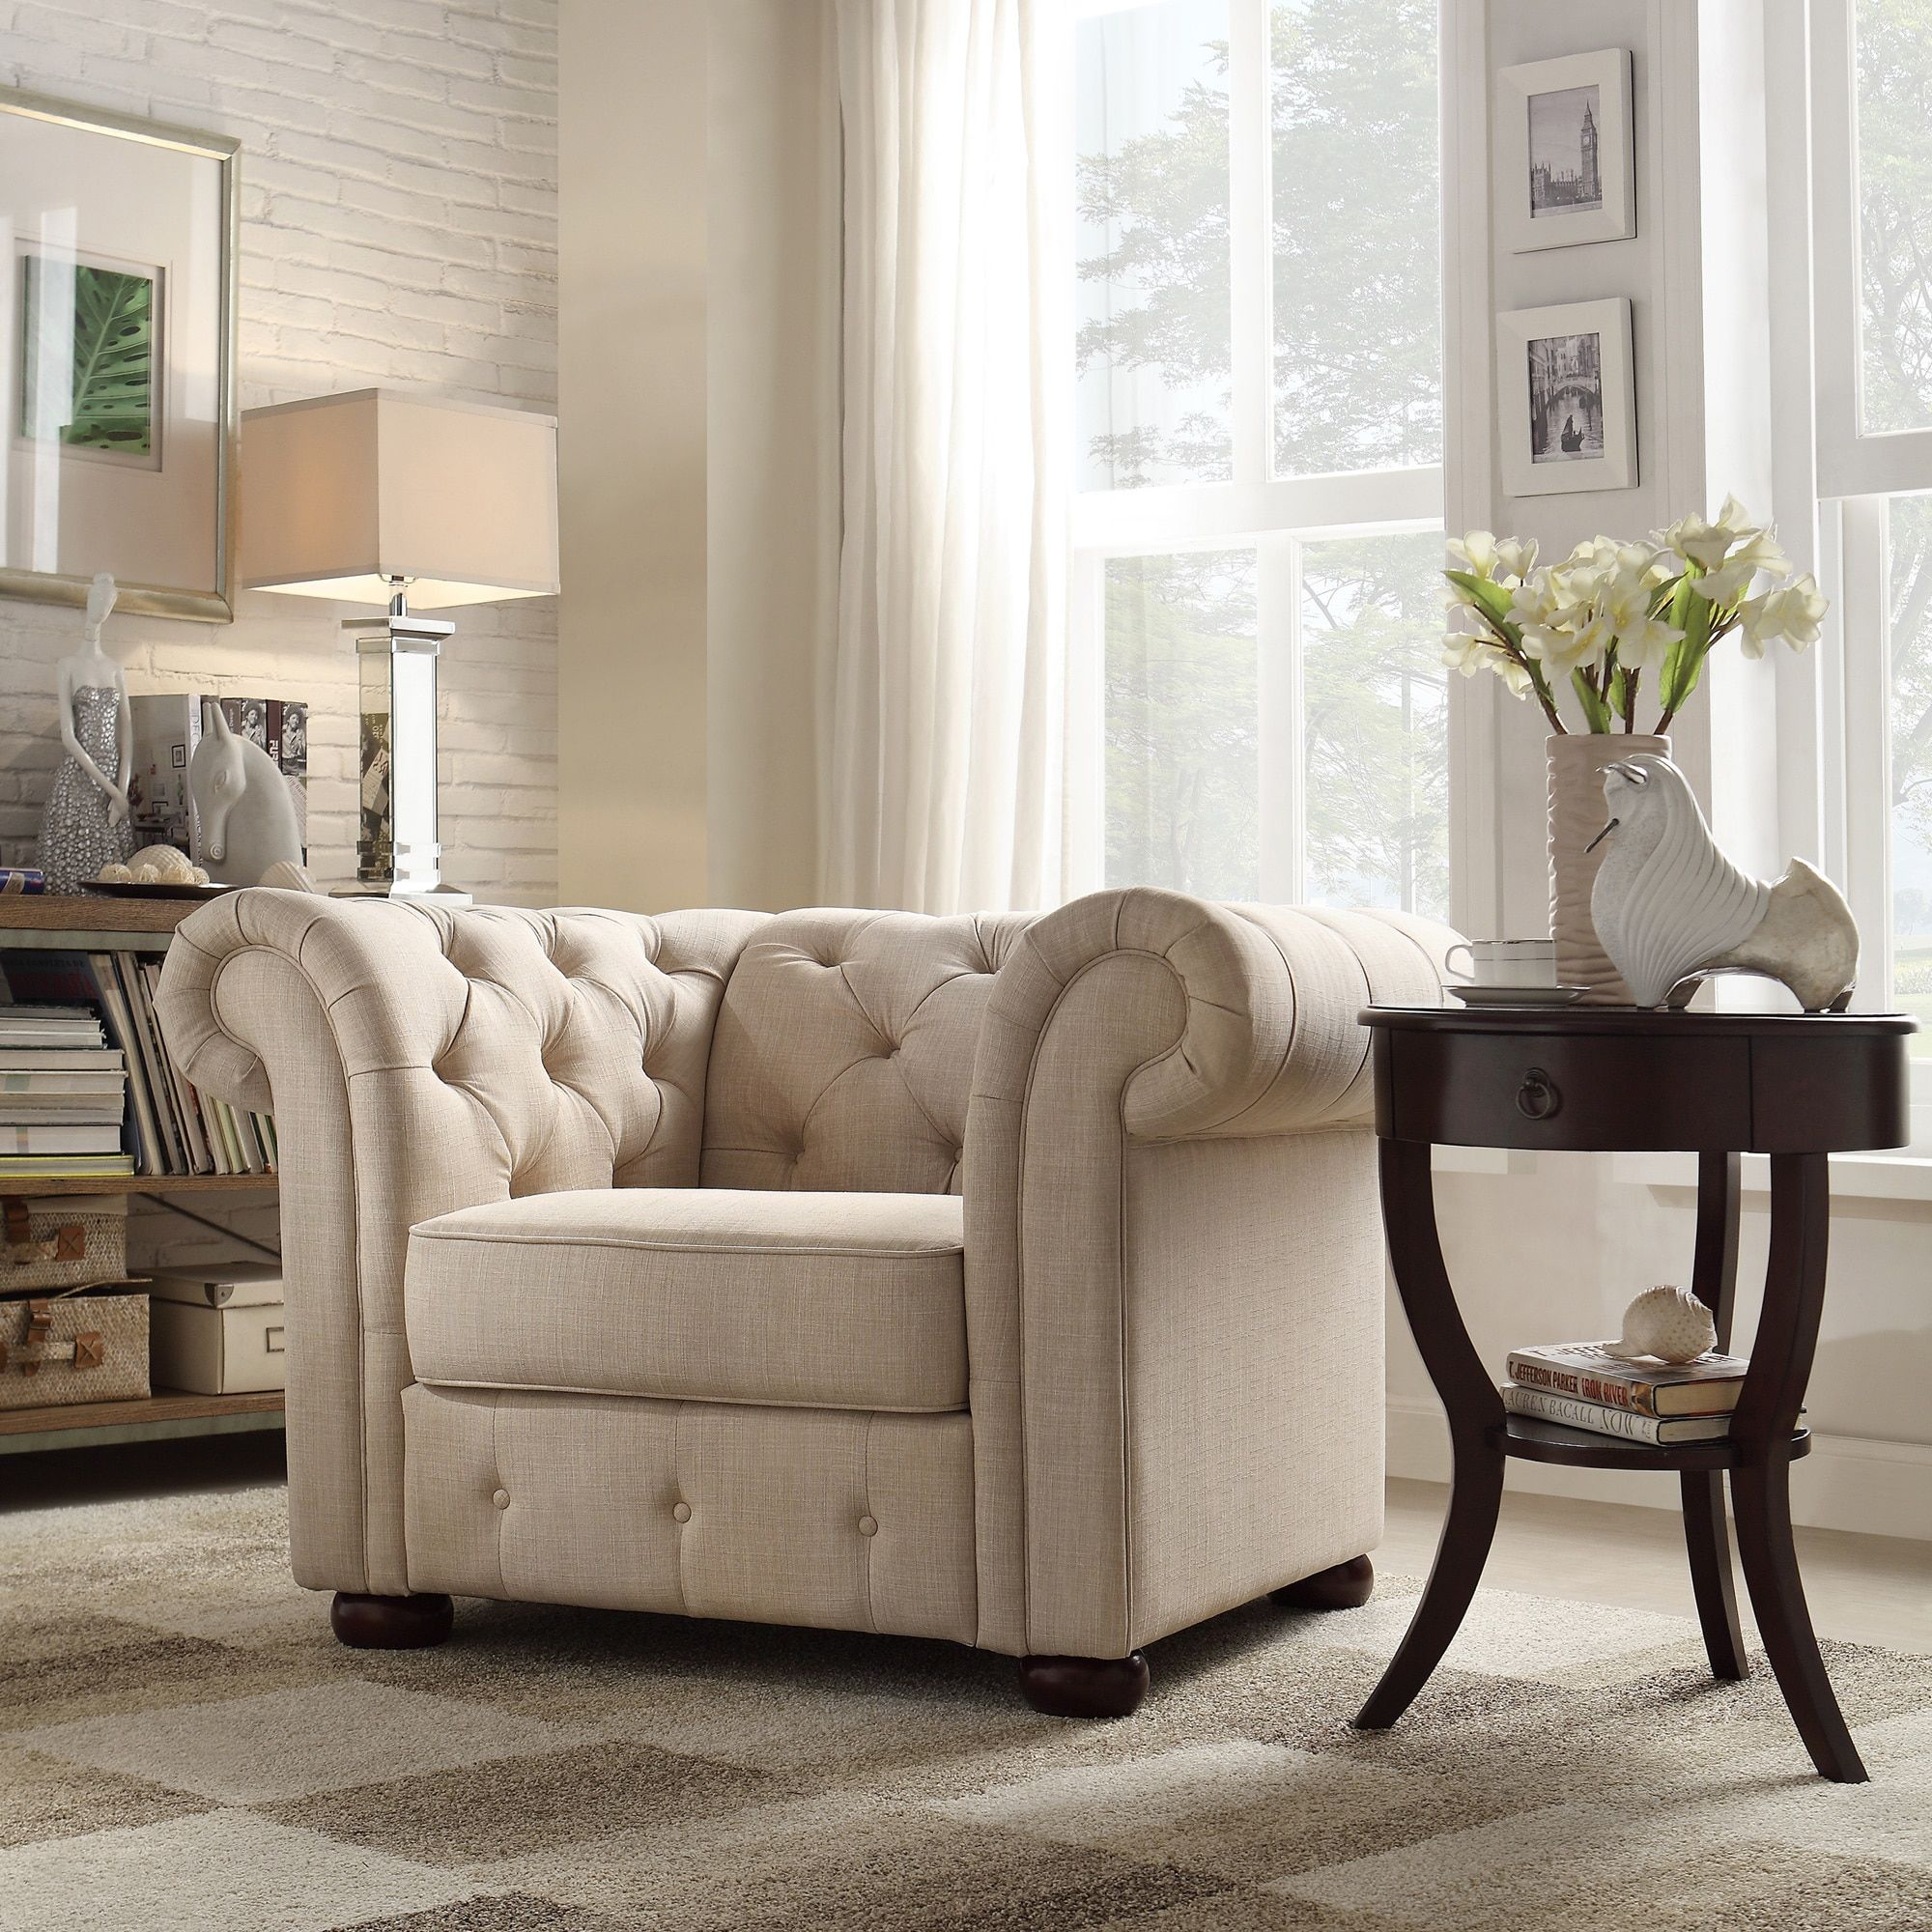 Knightsbridge Beige Linen Tufted Scroll Arm Chesterfield Chair by